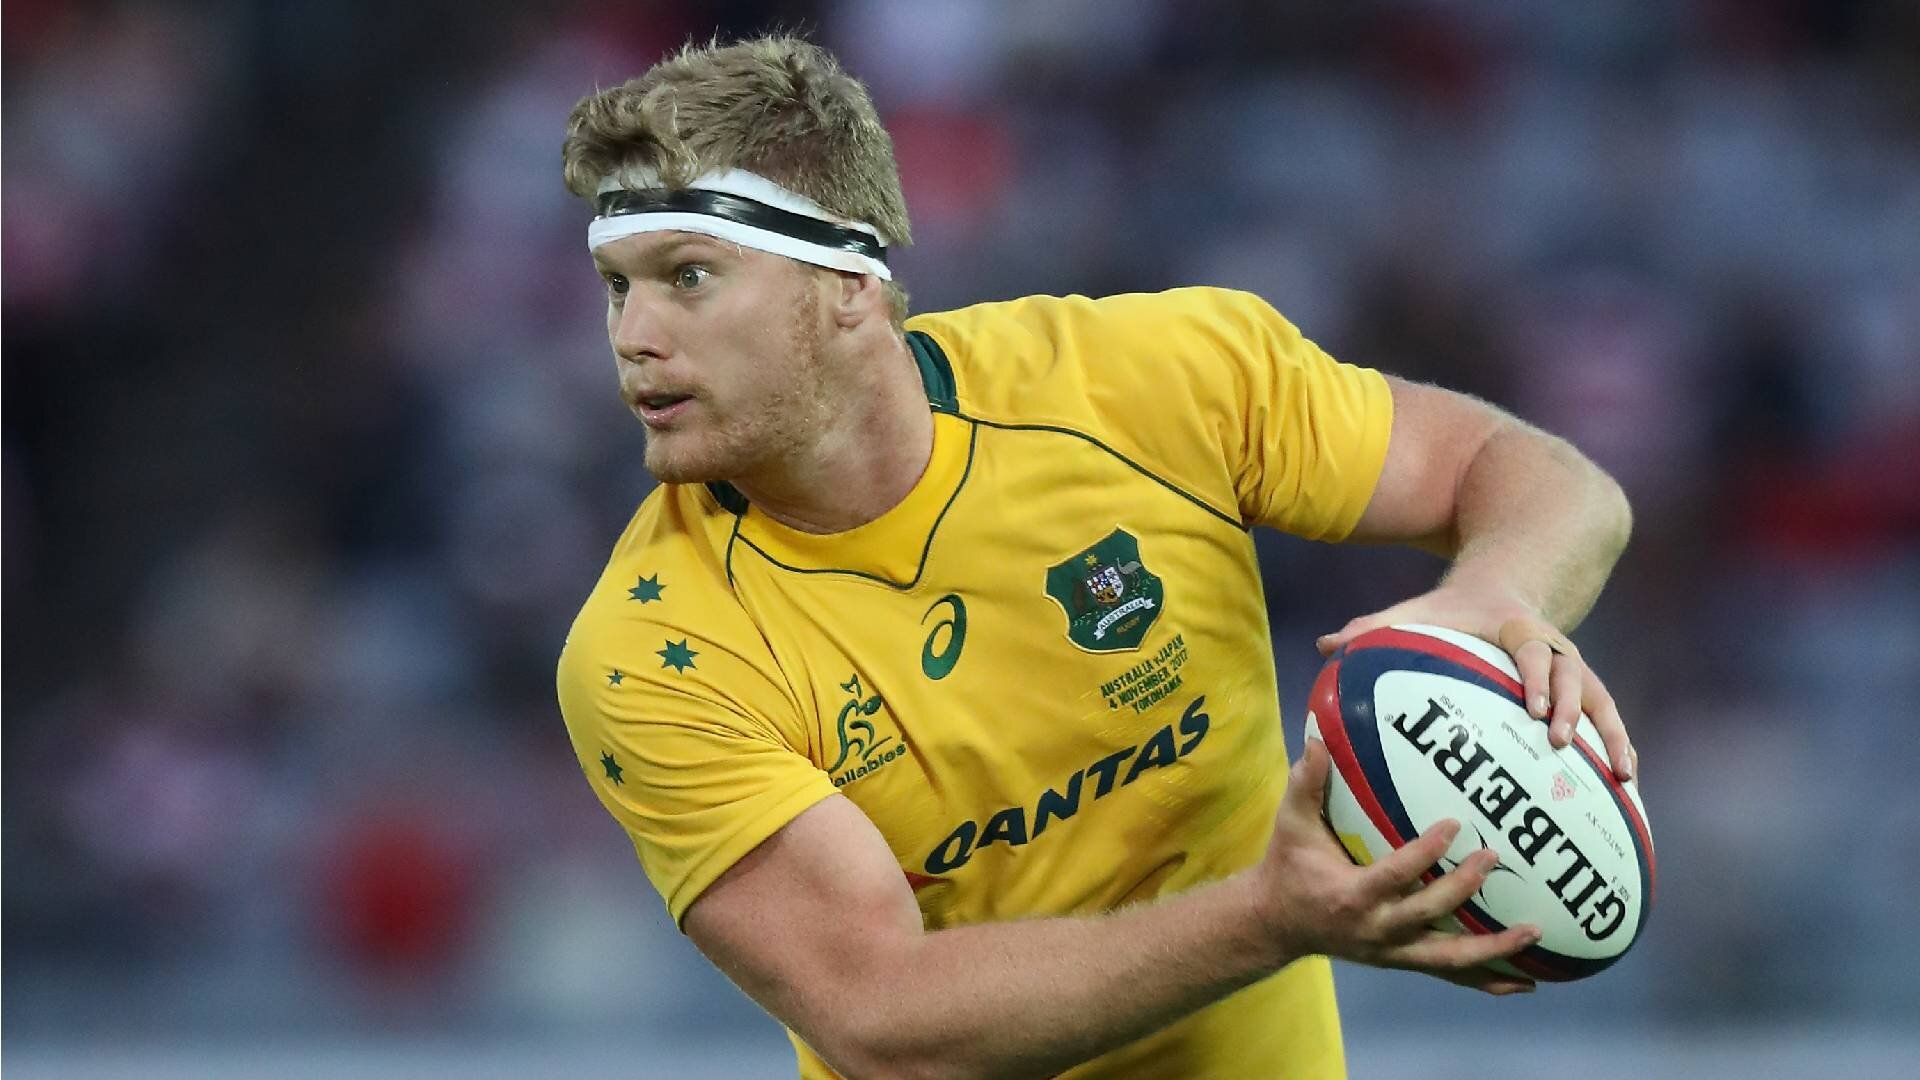 'I've worked hard': Philip looking to make the most of Wallabies second chance